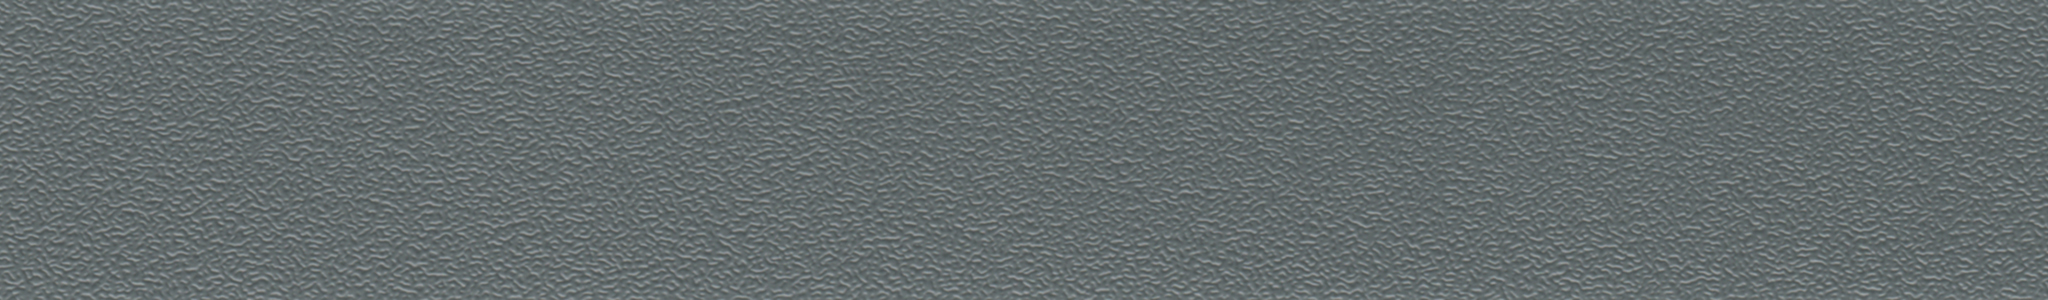 HU 17164 ABS Edge Anthracite Pearl 101 Hot-Air